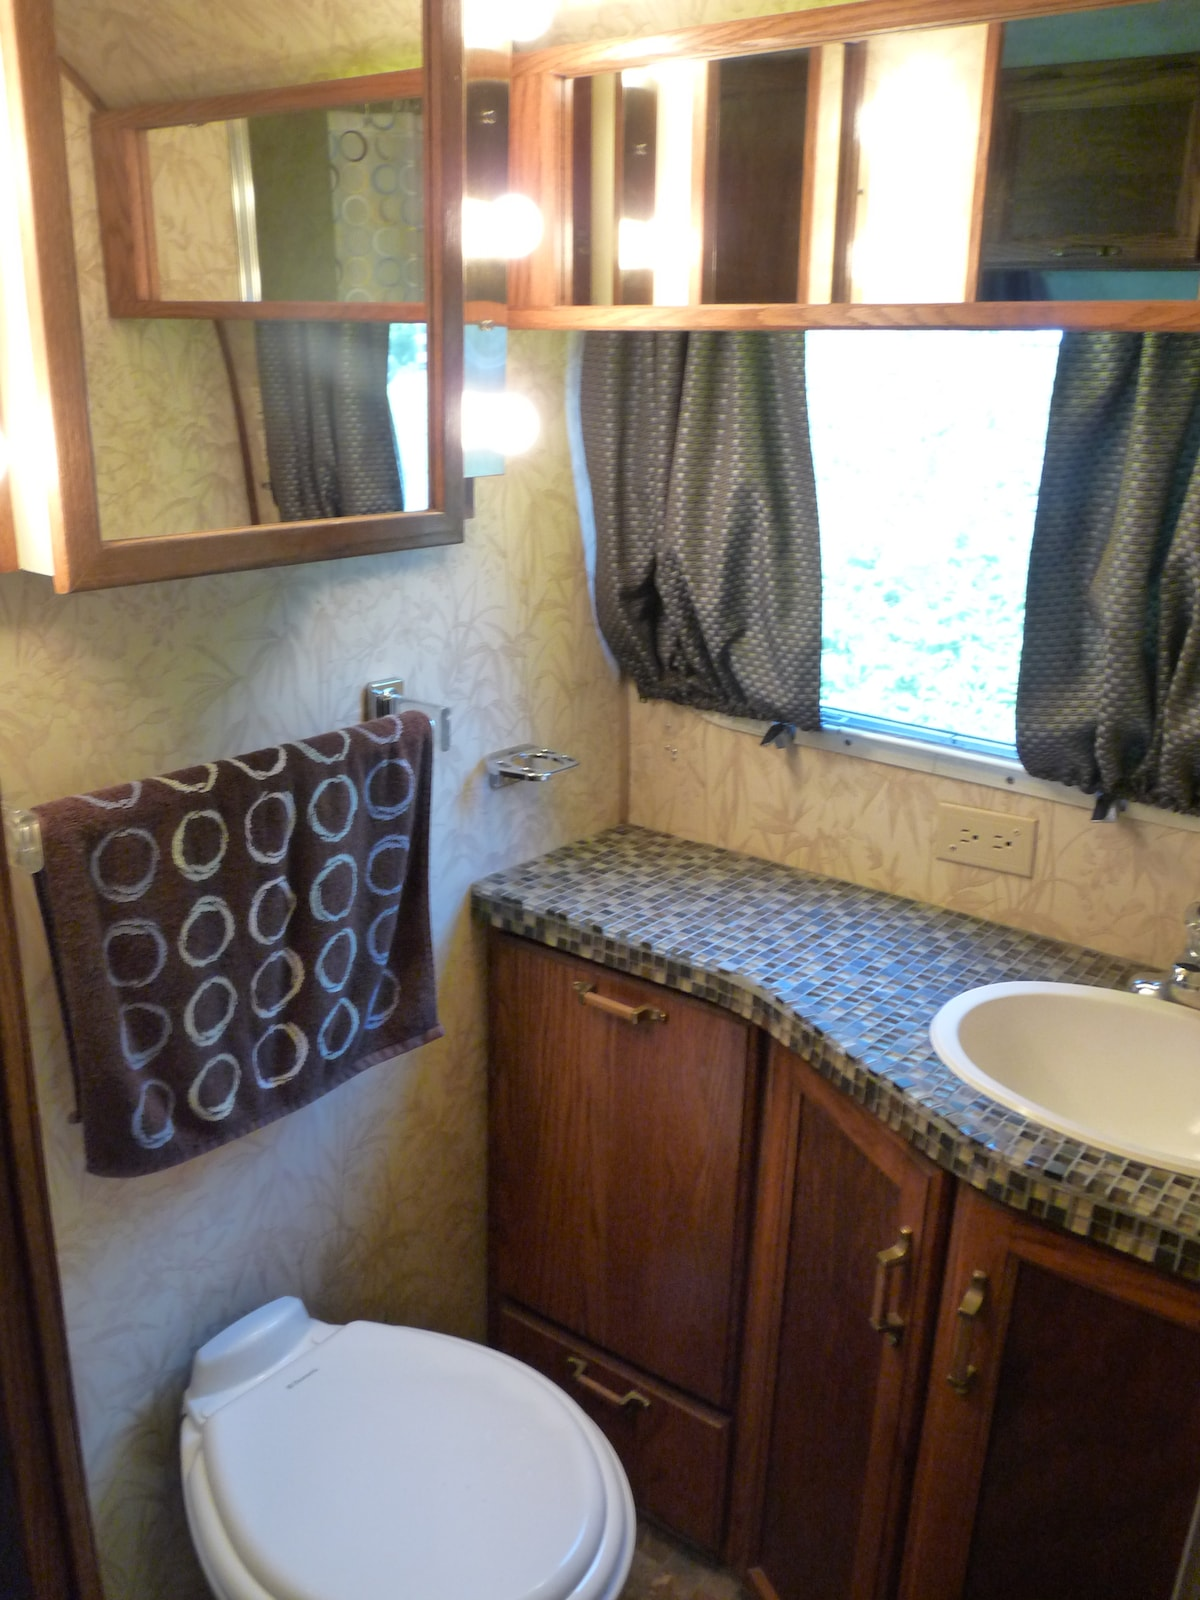 Beautifully renovated and clean bathroom.